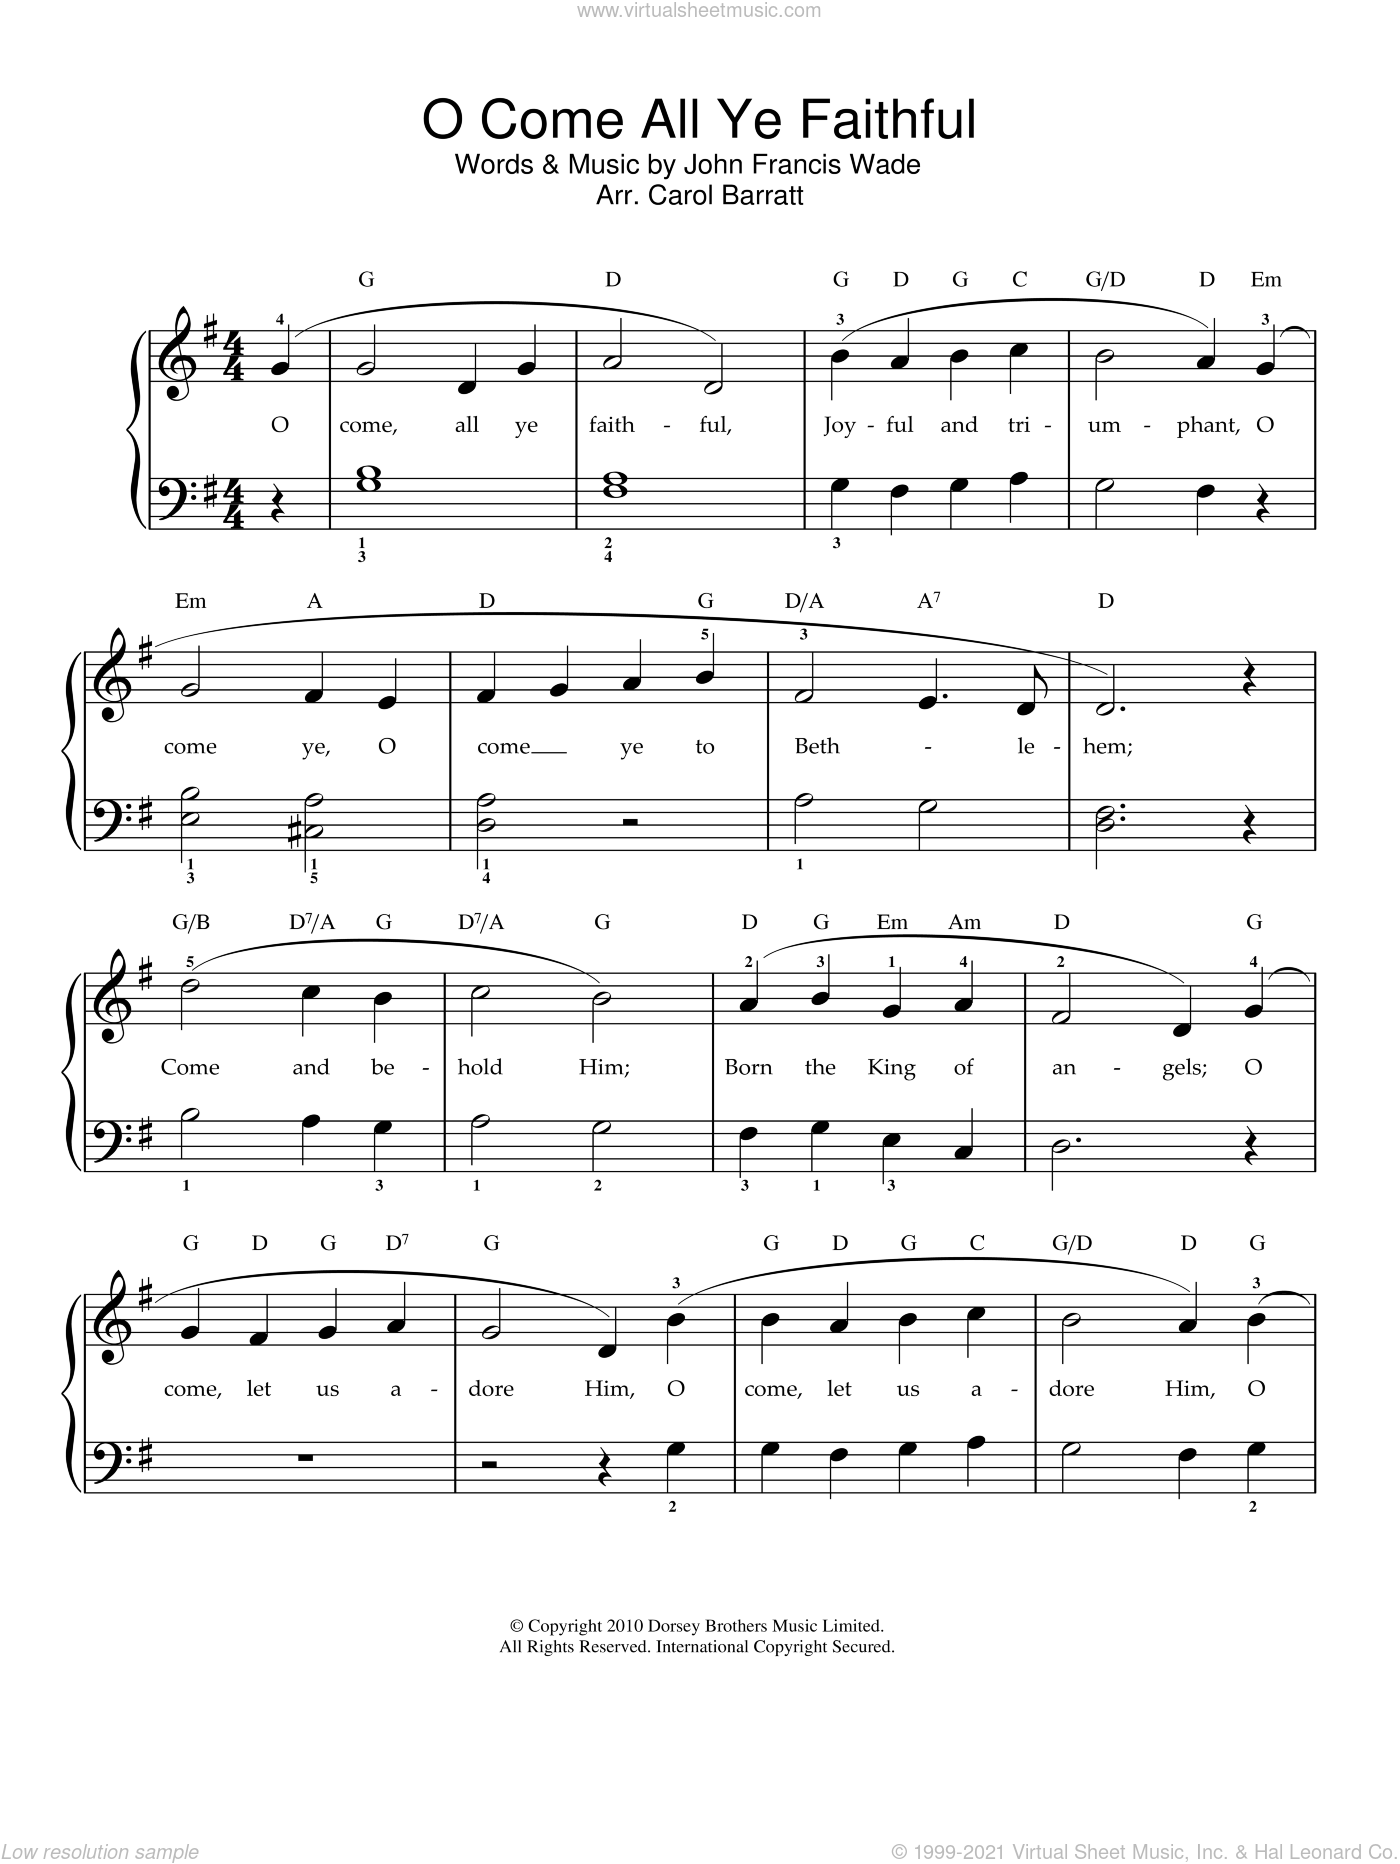 O Come, All Ye Faithful (Adeste Fideles) sheet music for voice and piano by John Francis Wade, intermediate. Score Image Preview.